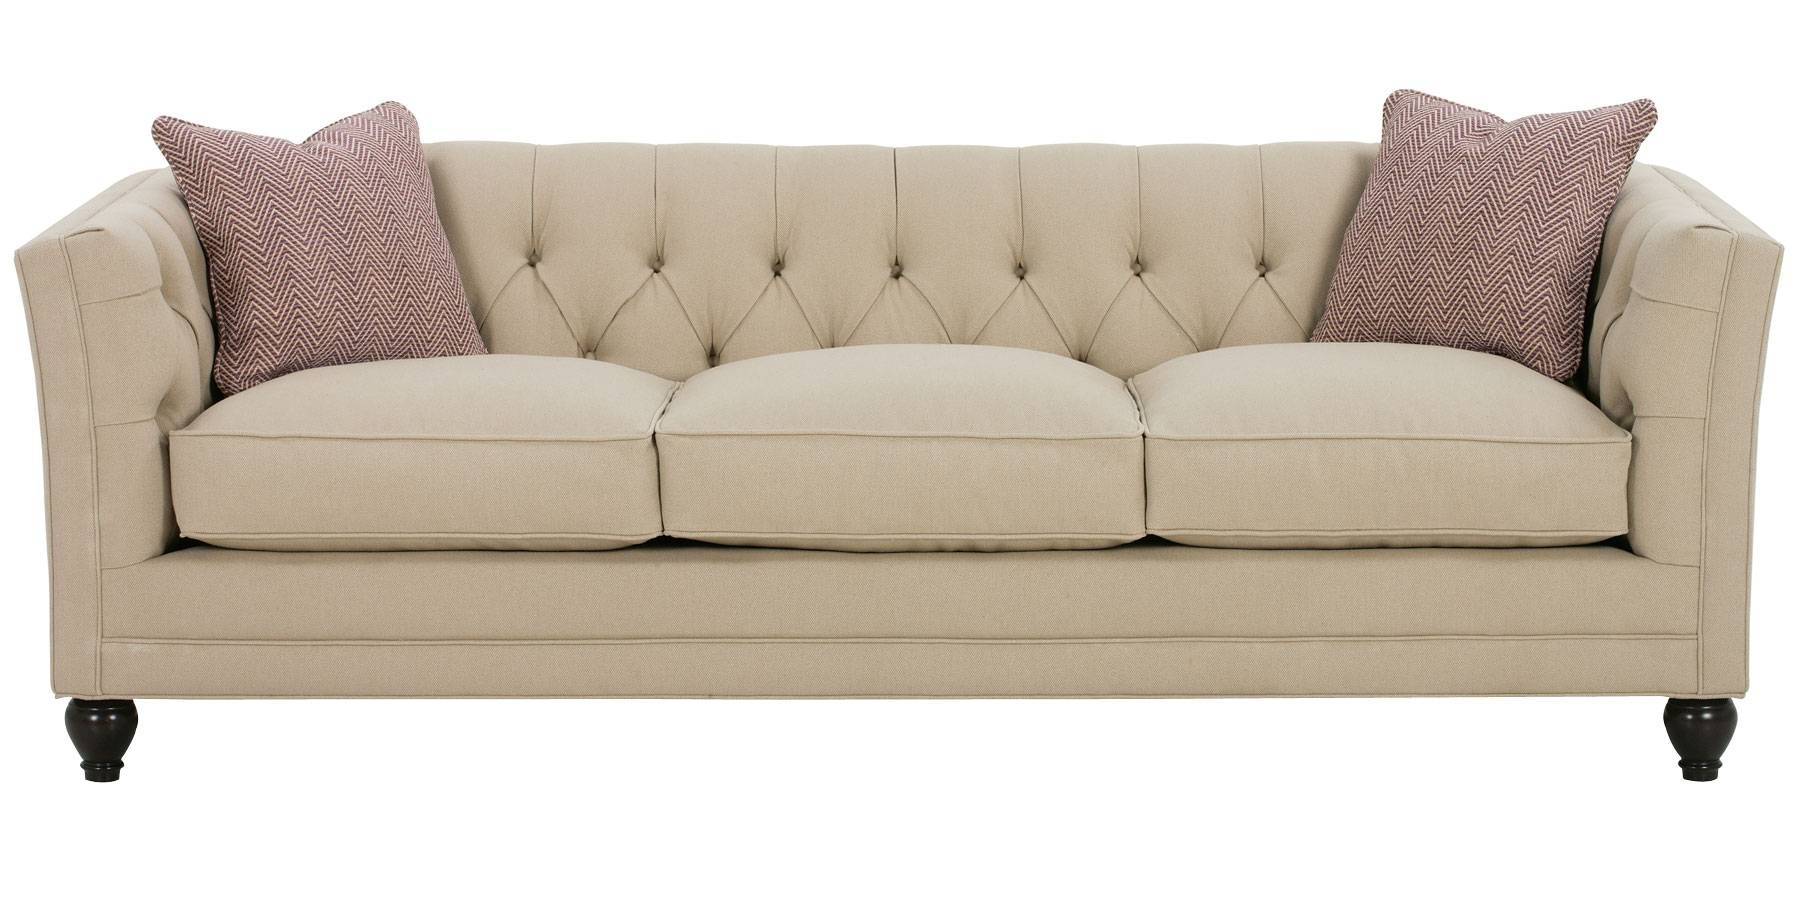 Fabric Upholstered Sofas And Chairs | Club Furniture throughout Fabric Sofas (Image 15 of 30)